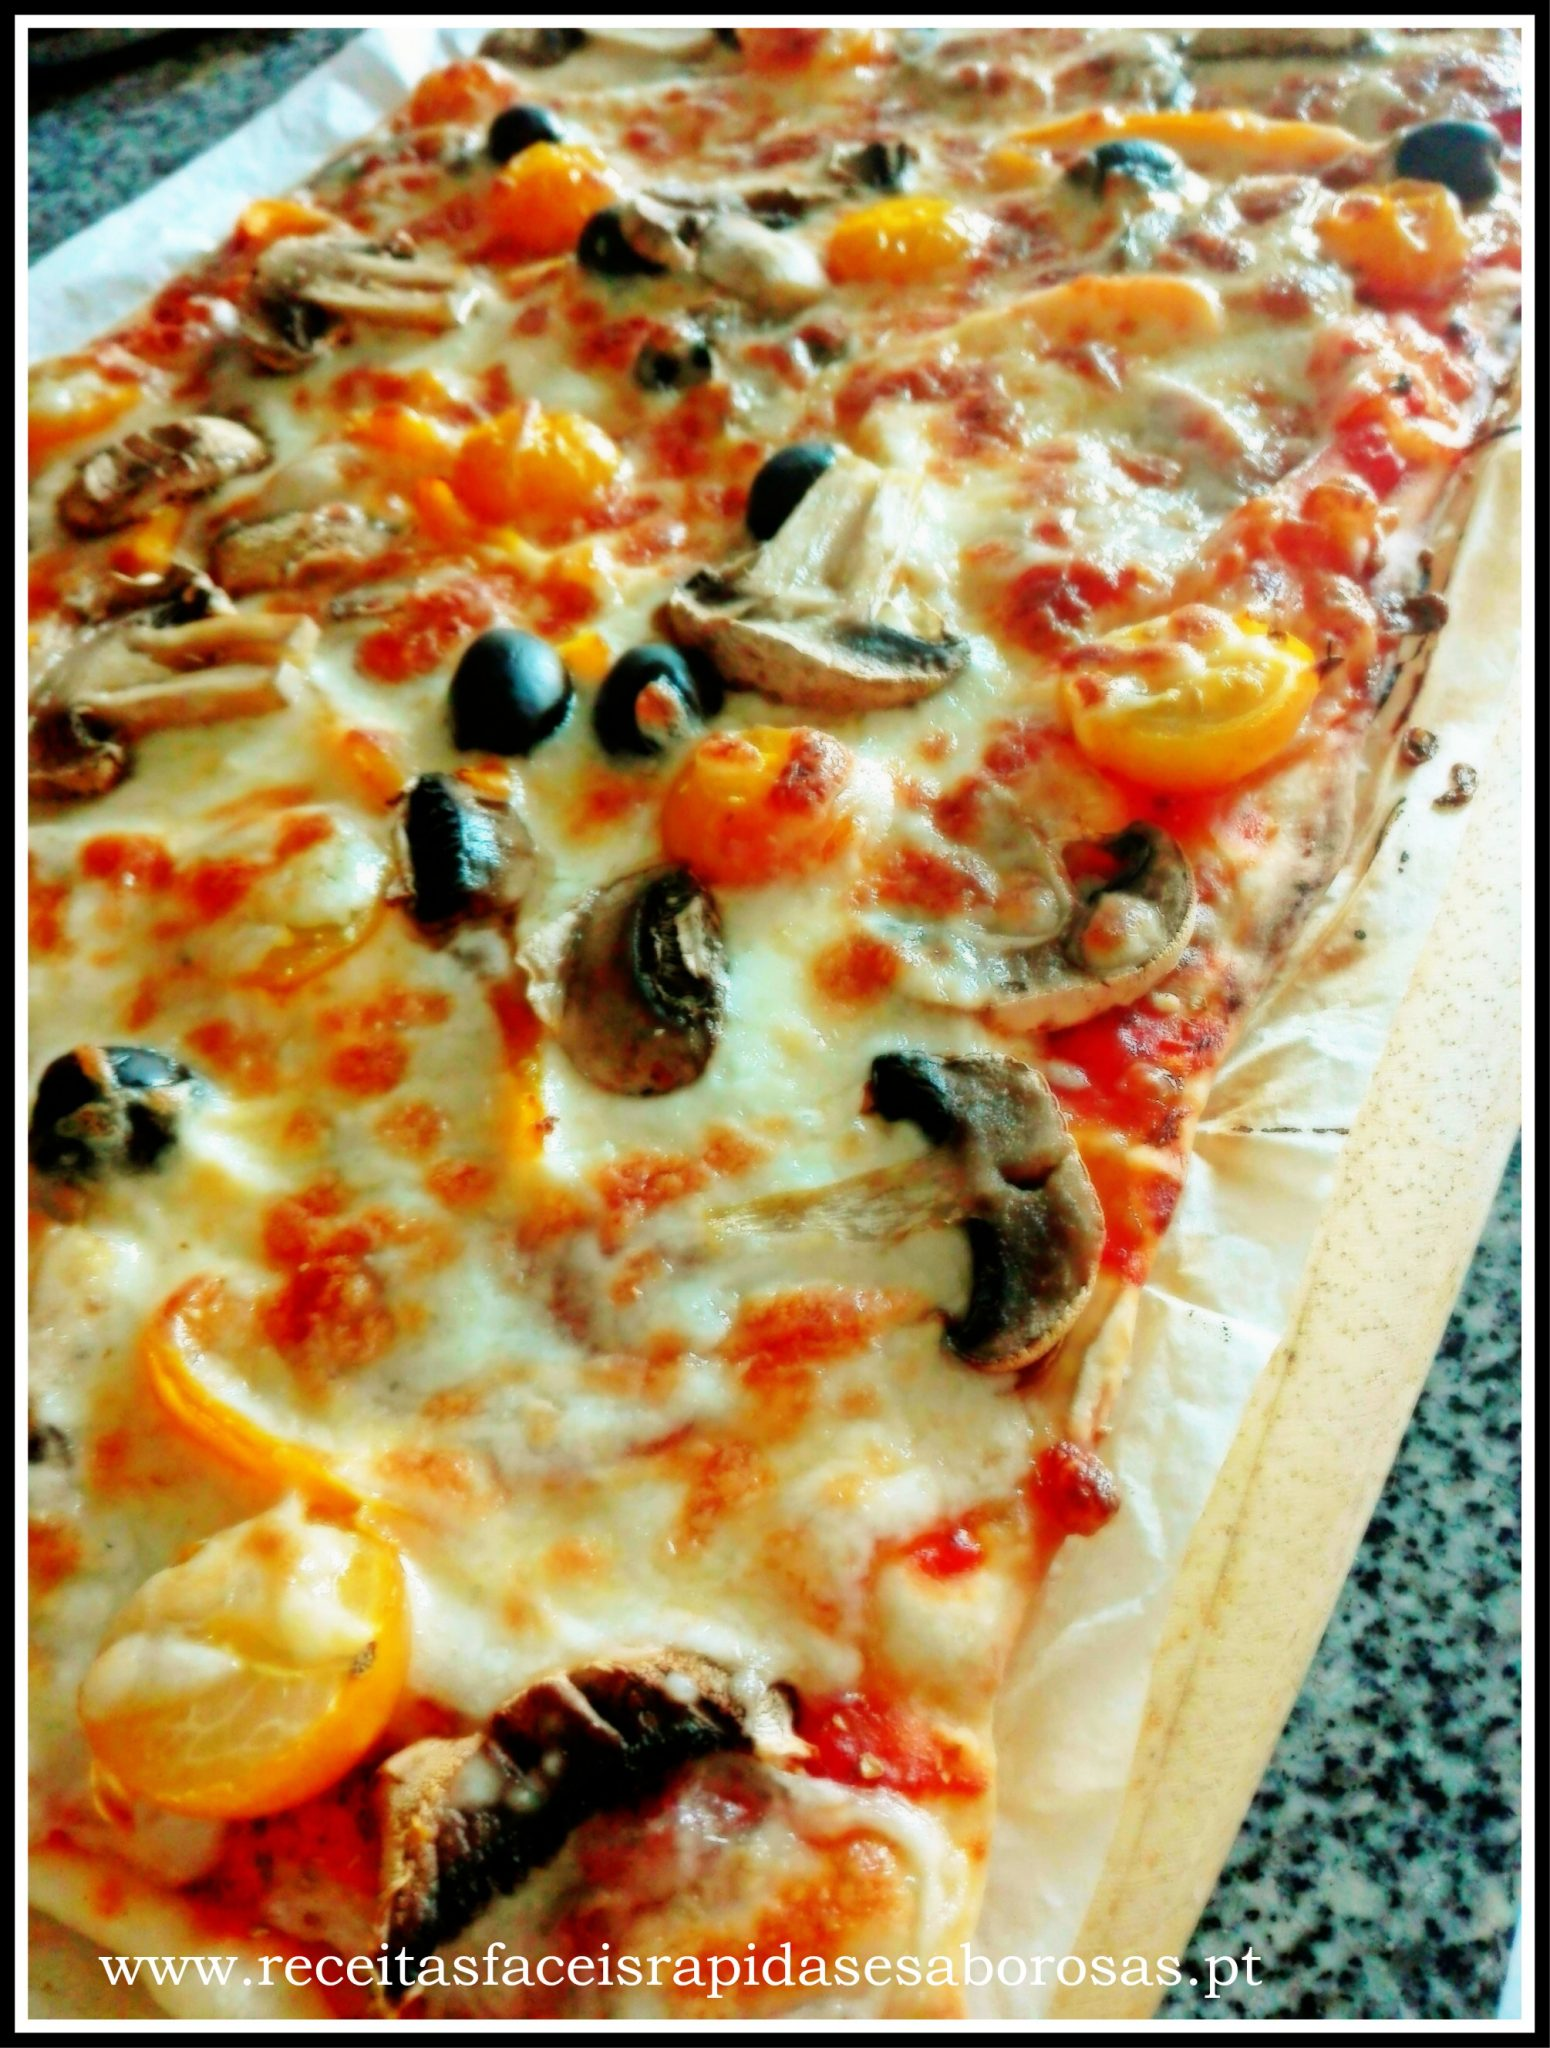 Piza imperial